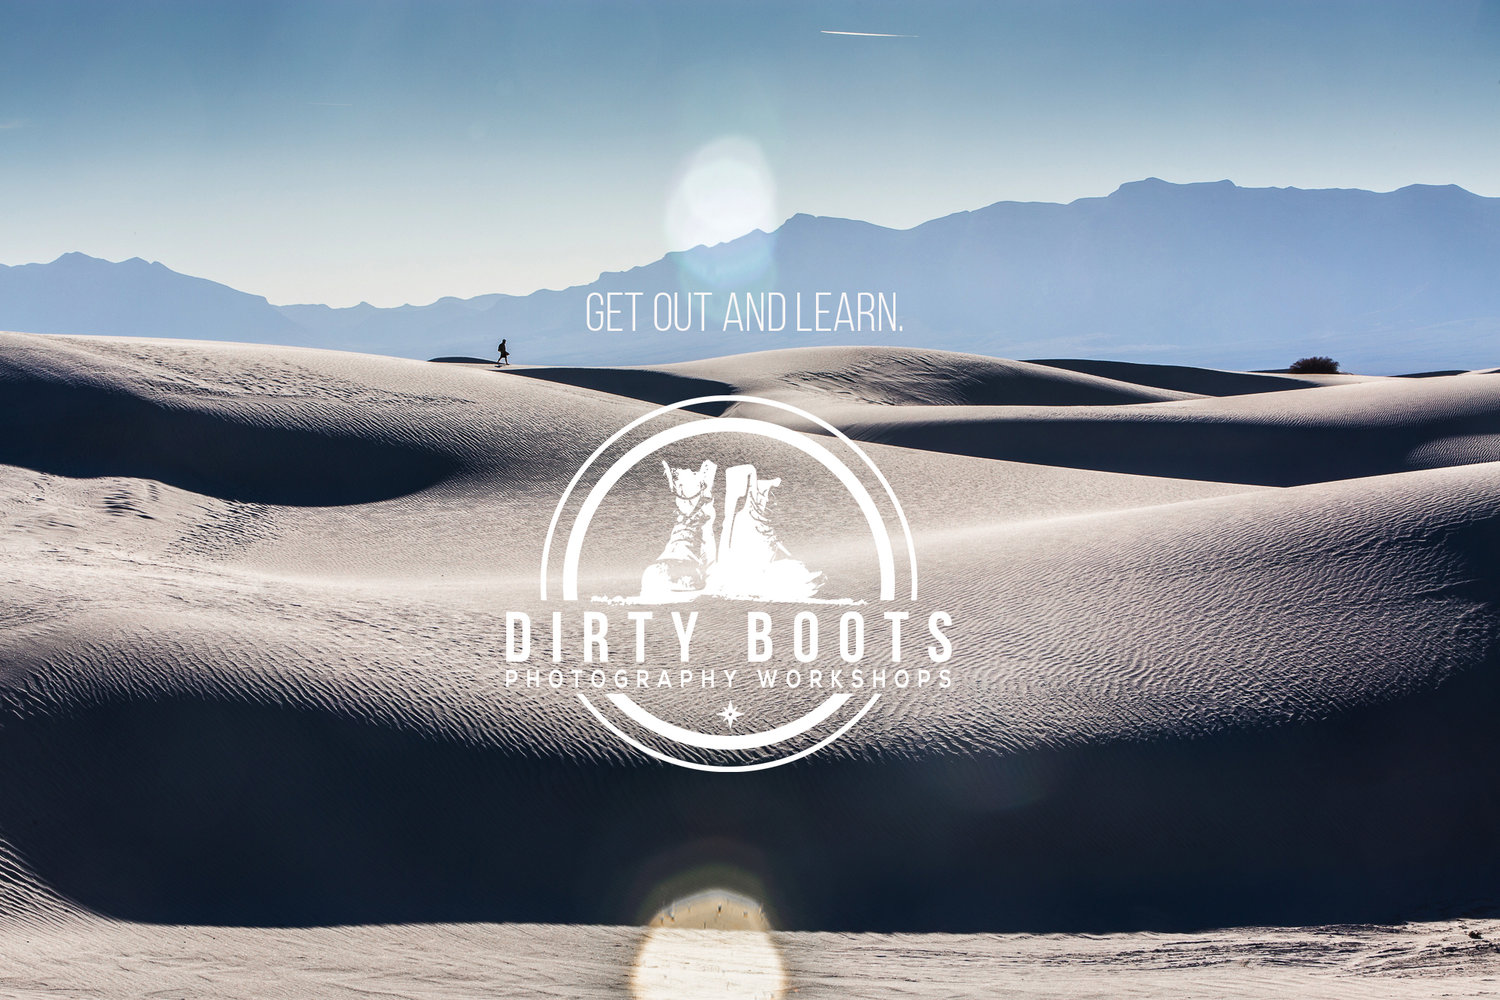 Dirty Boots Workshops